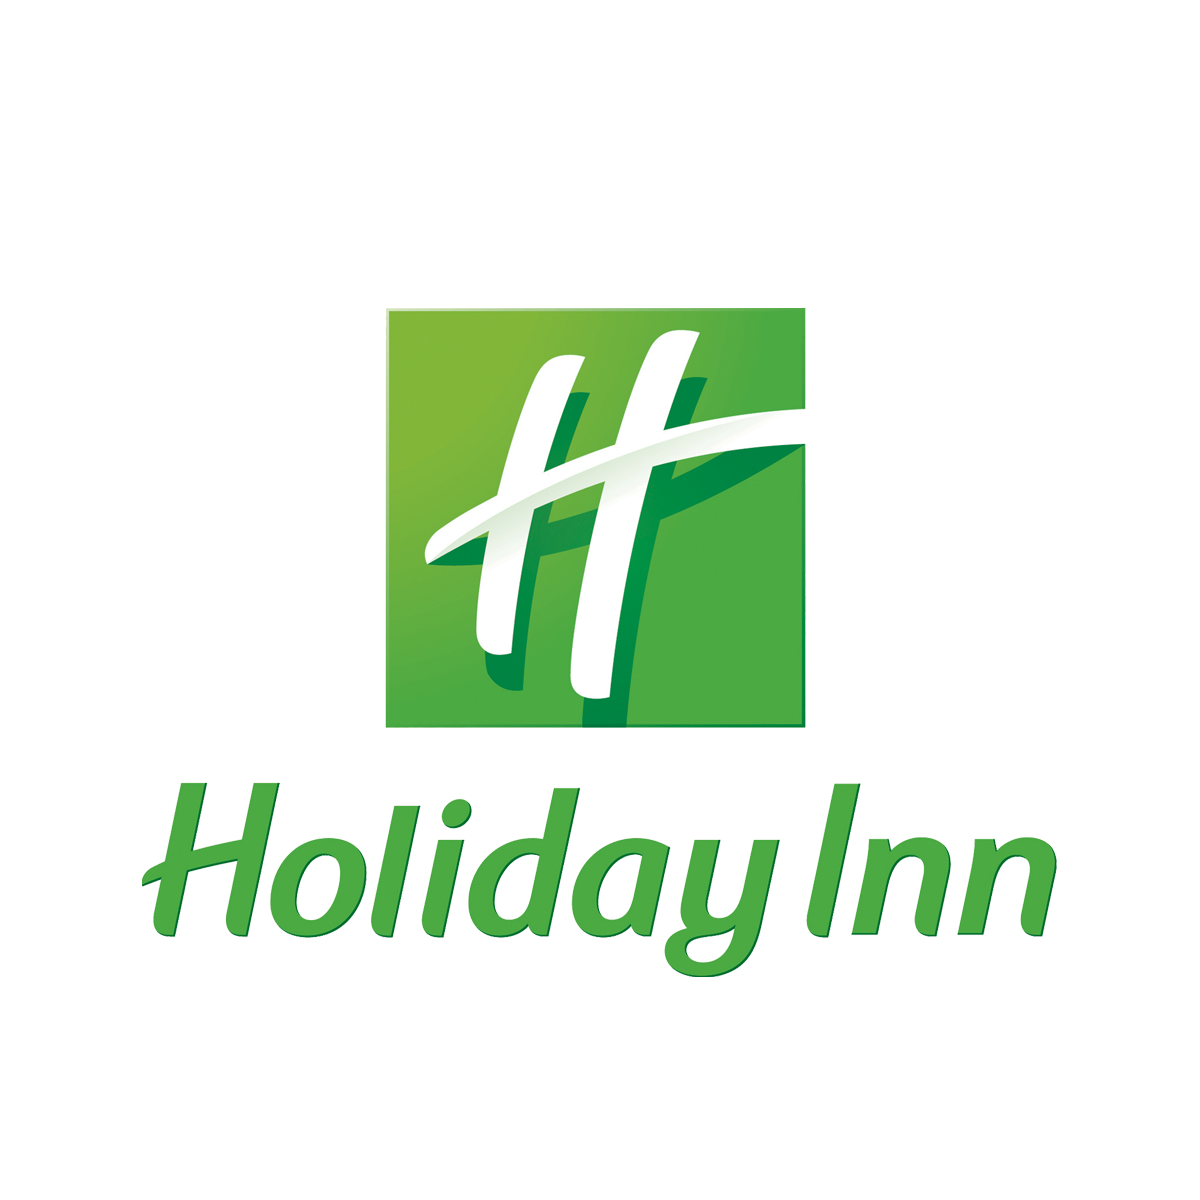 holiday inn analysis essay Open document below is an essay on holiday inn from anti essays, your source for research papers, essays, and term paper examples.